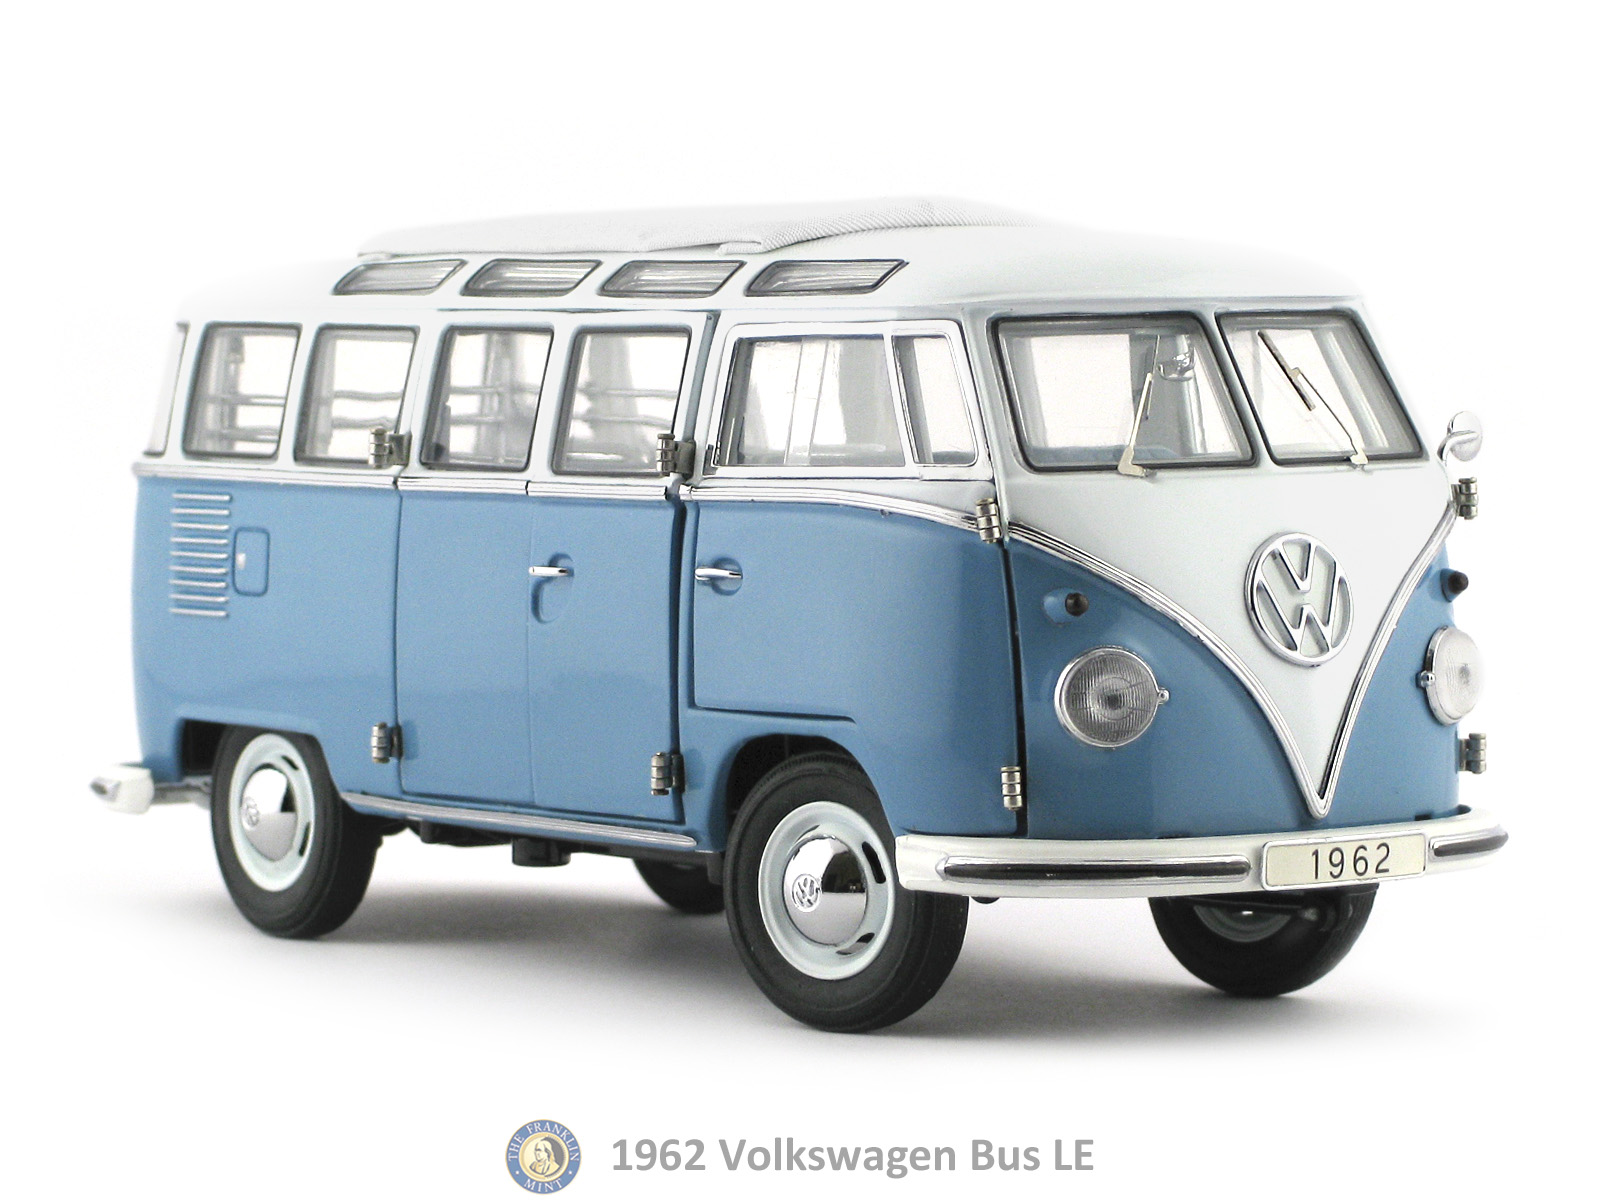 1962 Volkswagen Bus Le Franklin Mint